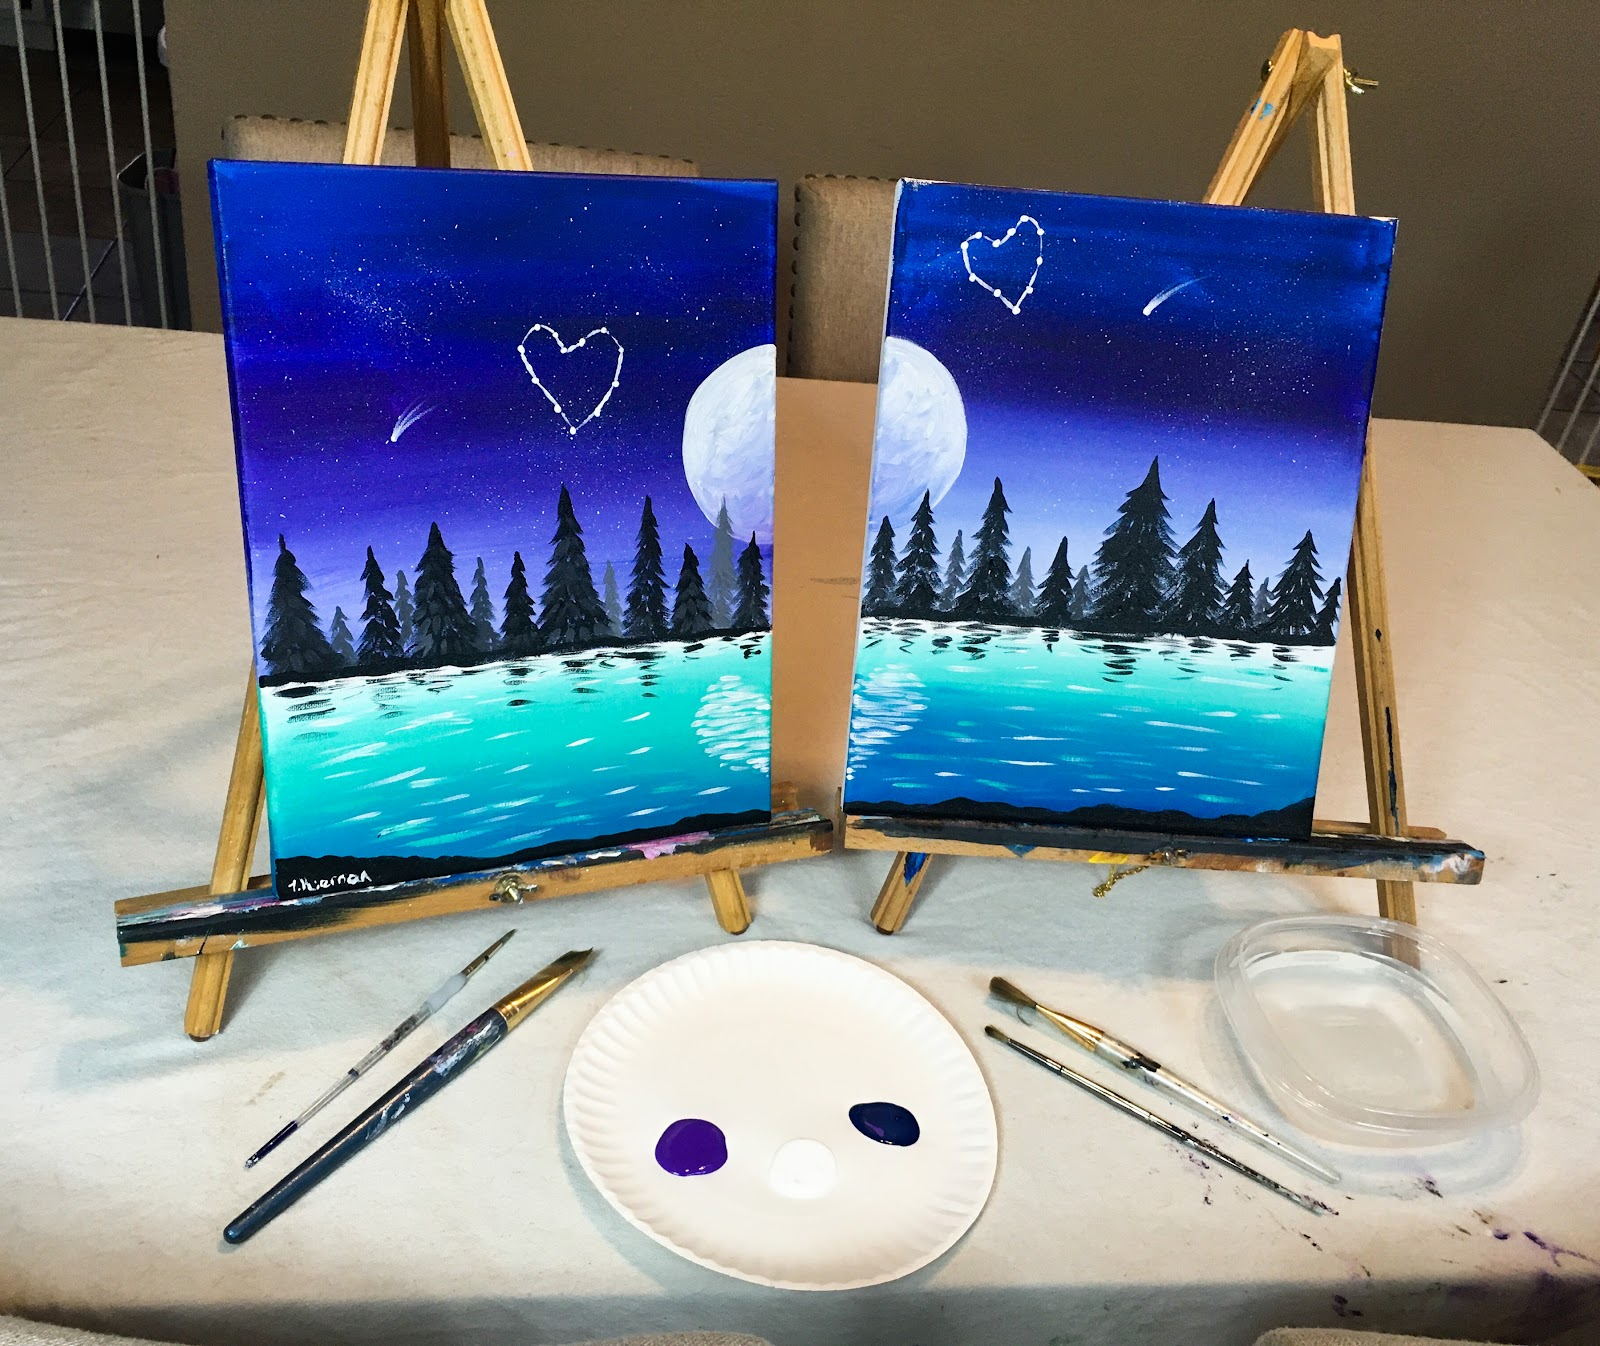 set up for couples date night at home paint night with painted canvases